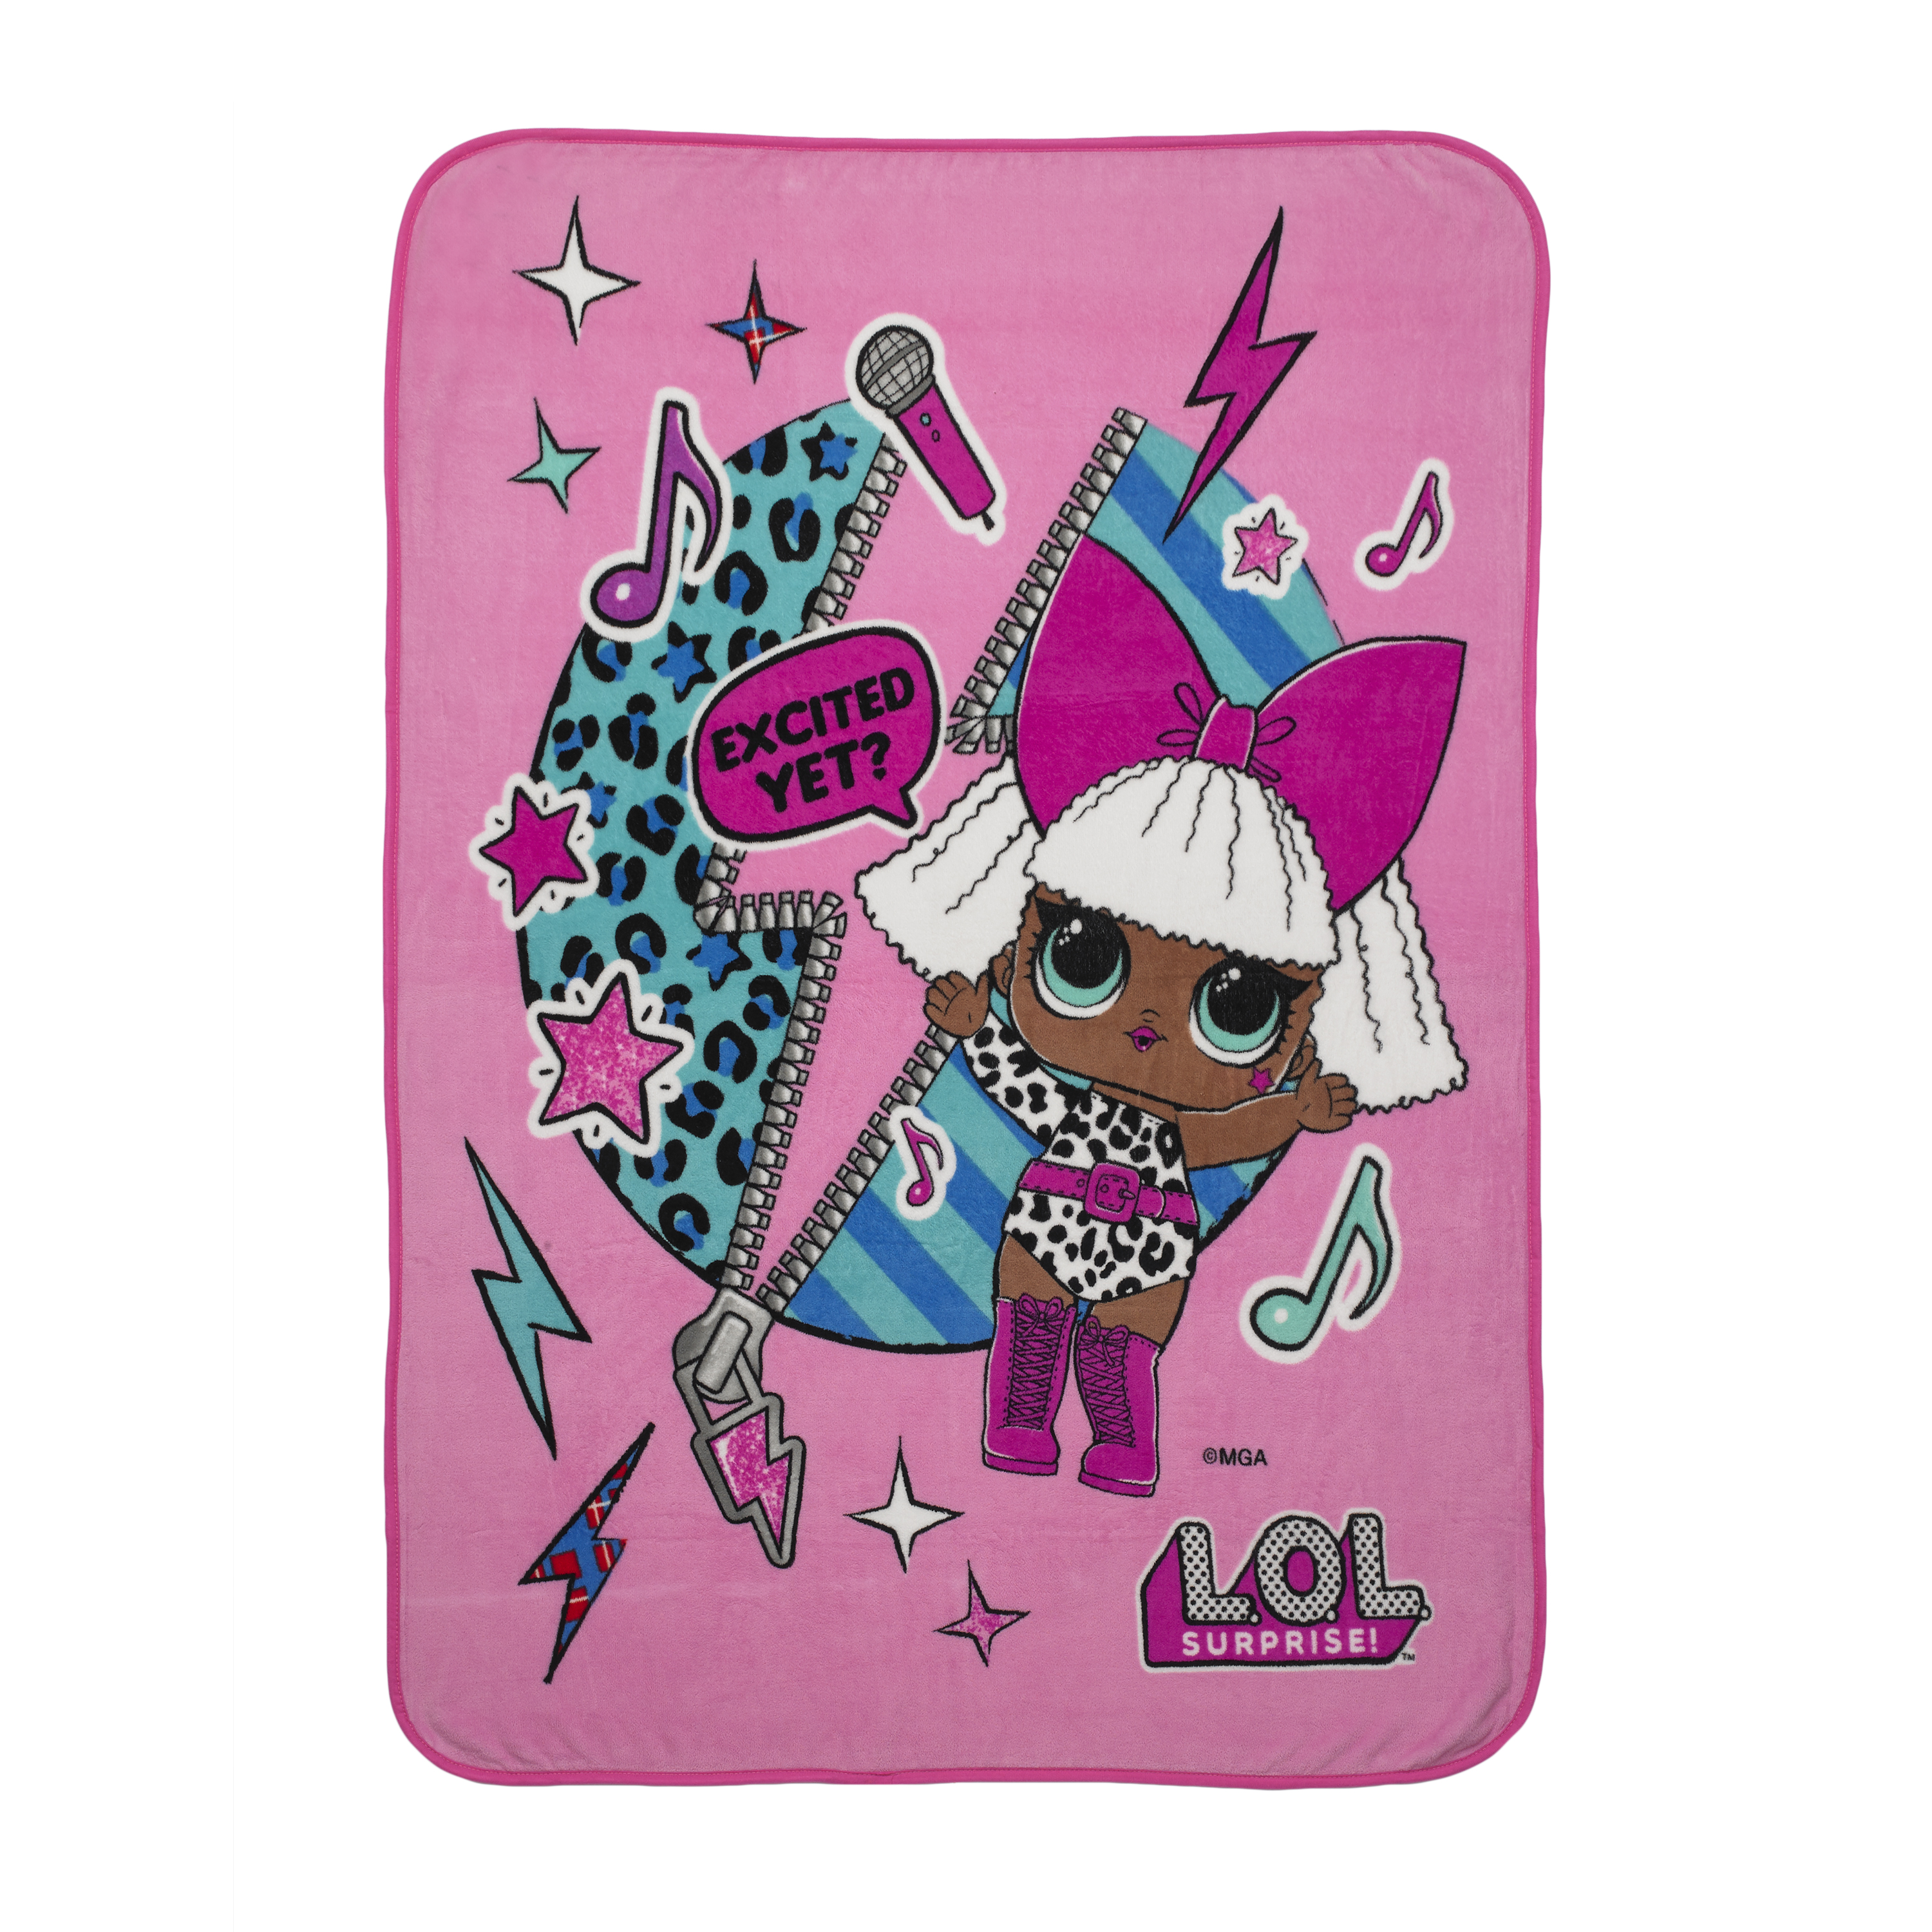 L.O.L. Surprise! Totally Diva Kids Bedding Throw, 1 Each